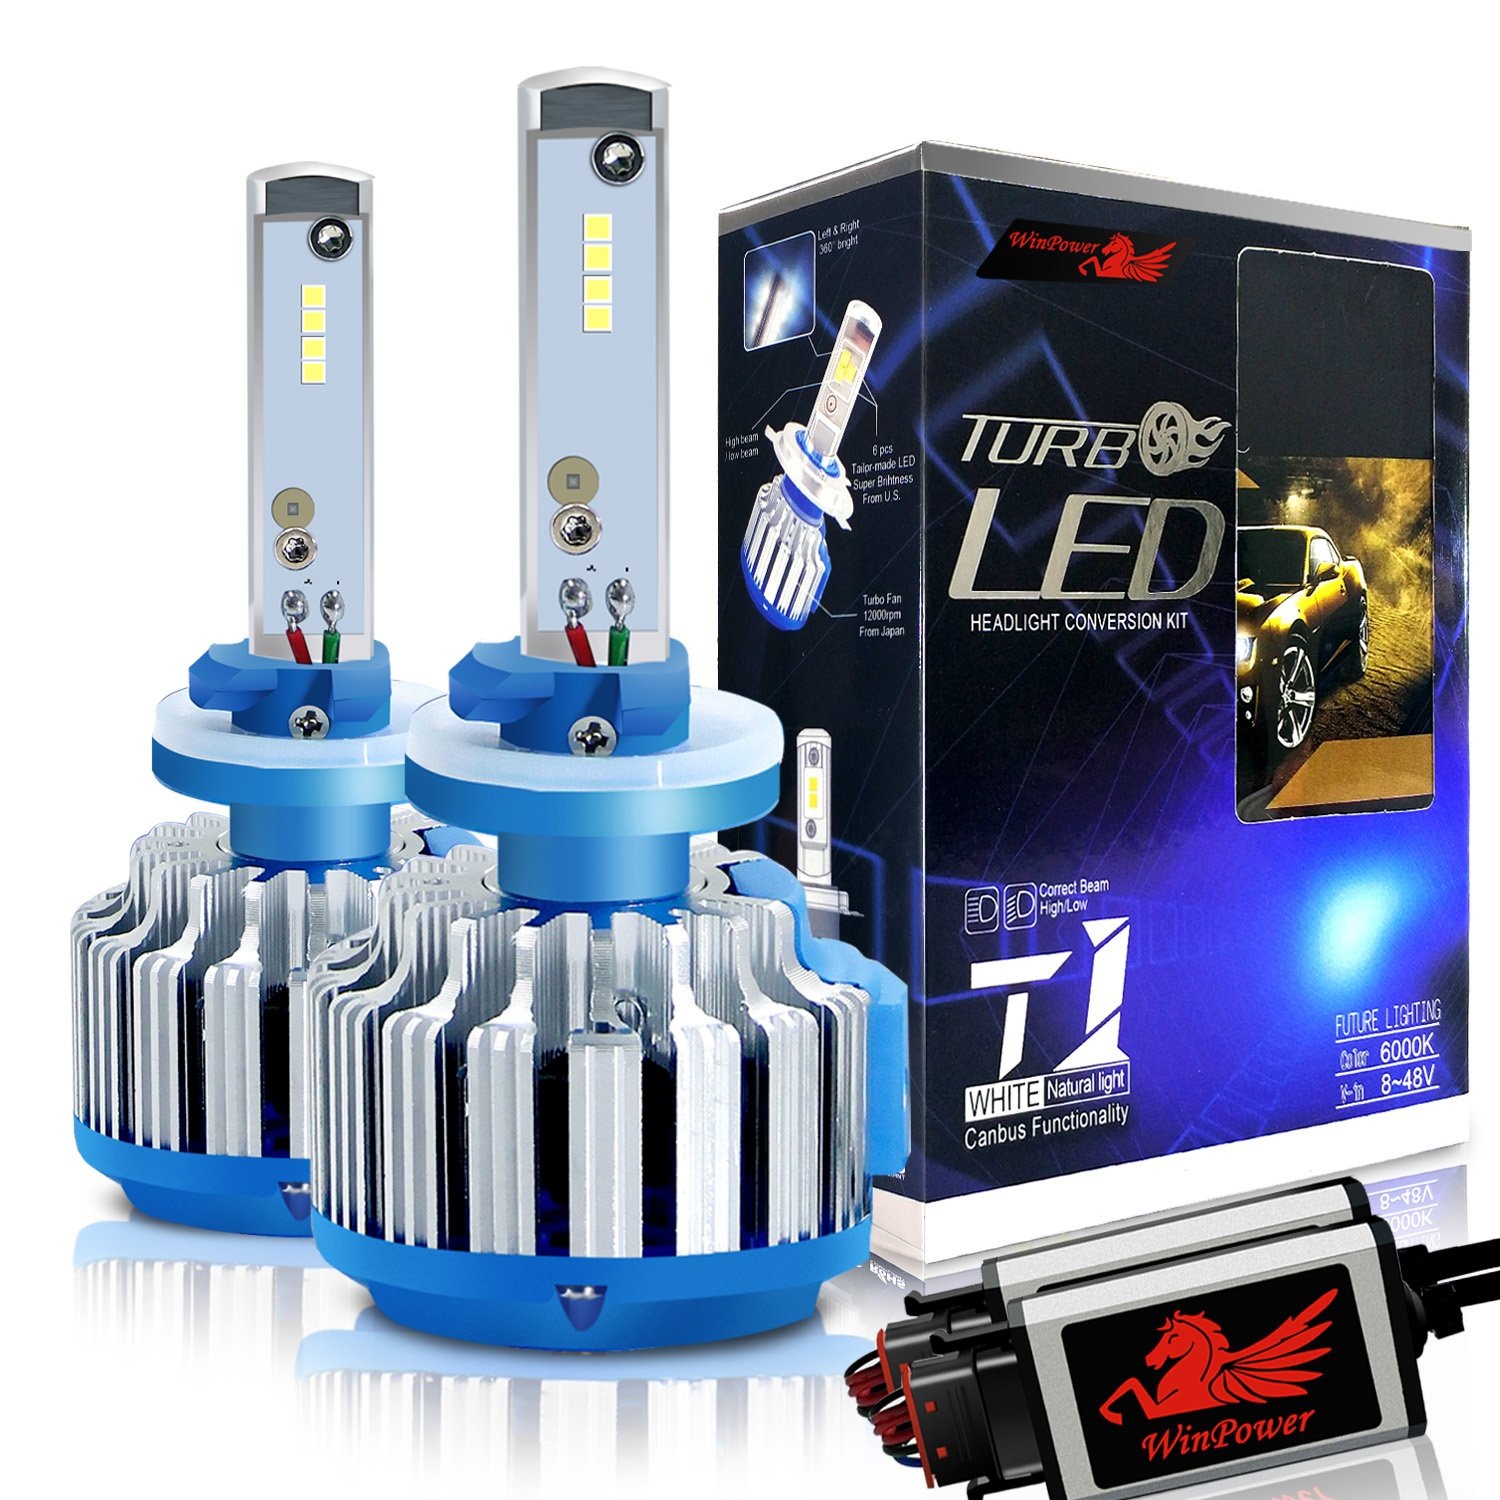 Win Power 9007 LED Headlight Bulbs Dual High Low Beam Conversion Kit CREE 70W 7200LM 6000K Cool White-2 Yr Warranty WP-T1-9007(HB5)